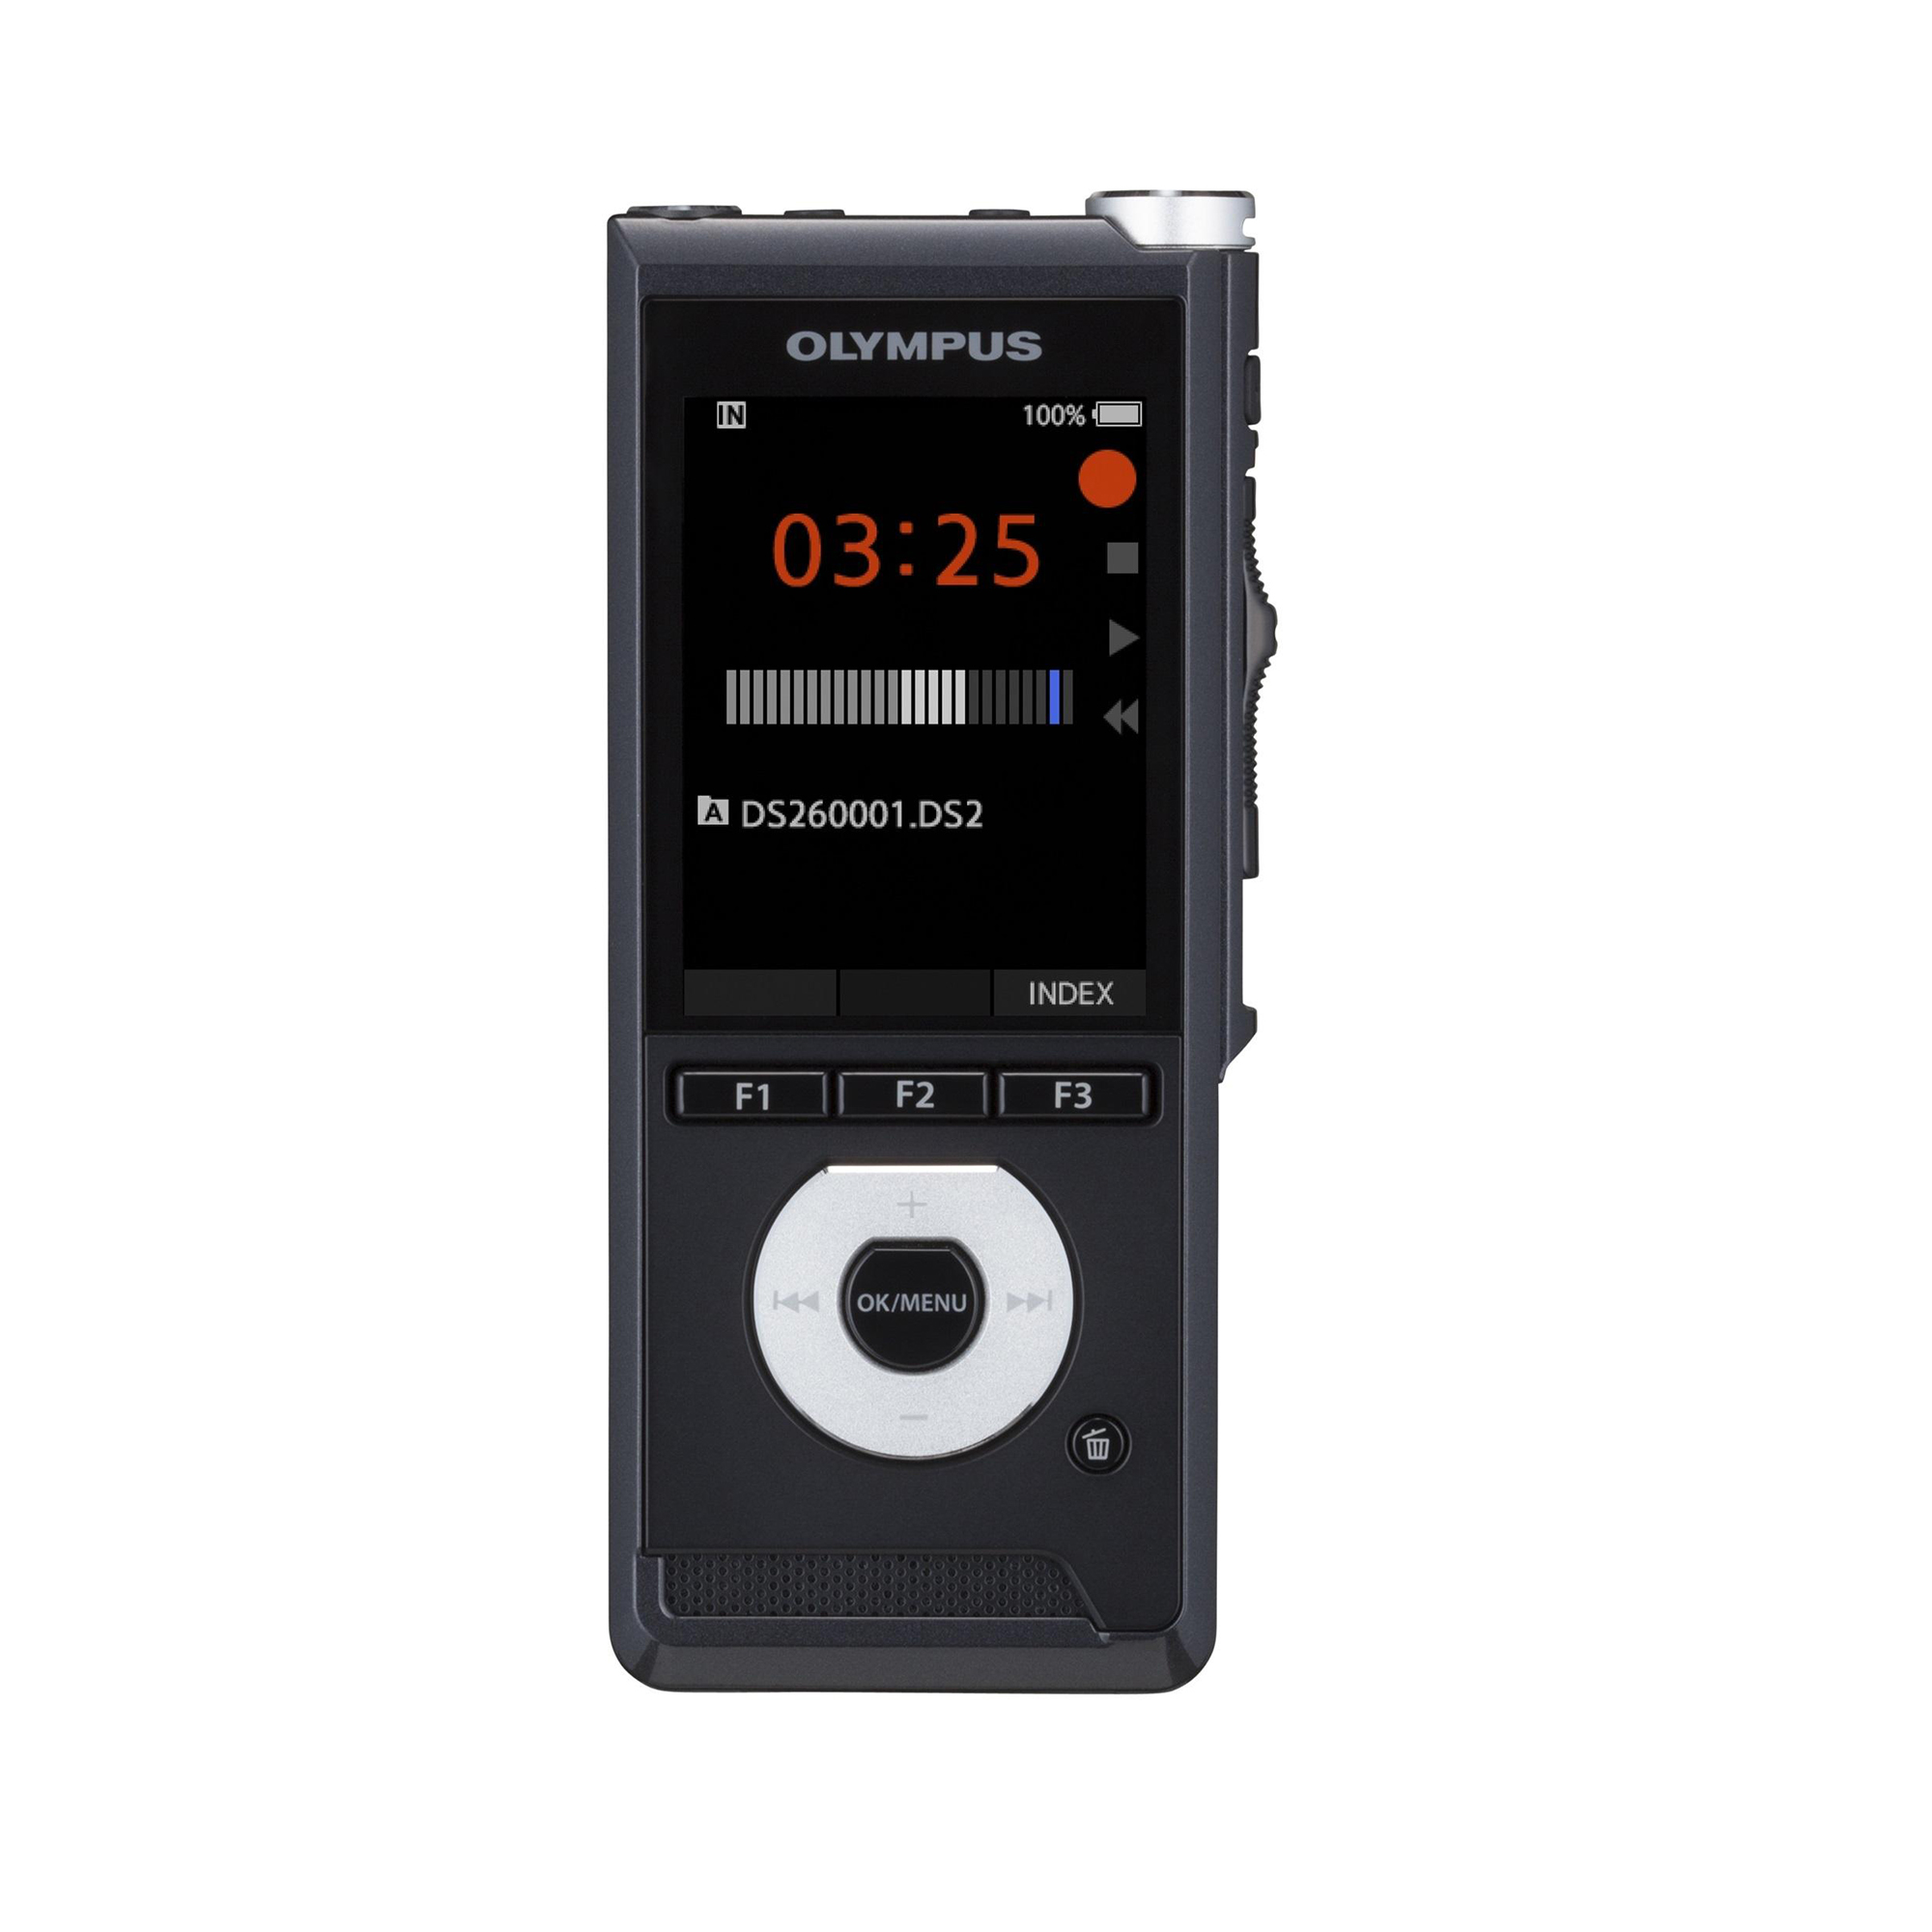 Digital Machines Olympus DS-2600 Digital Voice Recorder With Slide Switch Black Ref V741030BE000